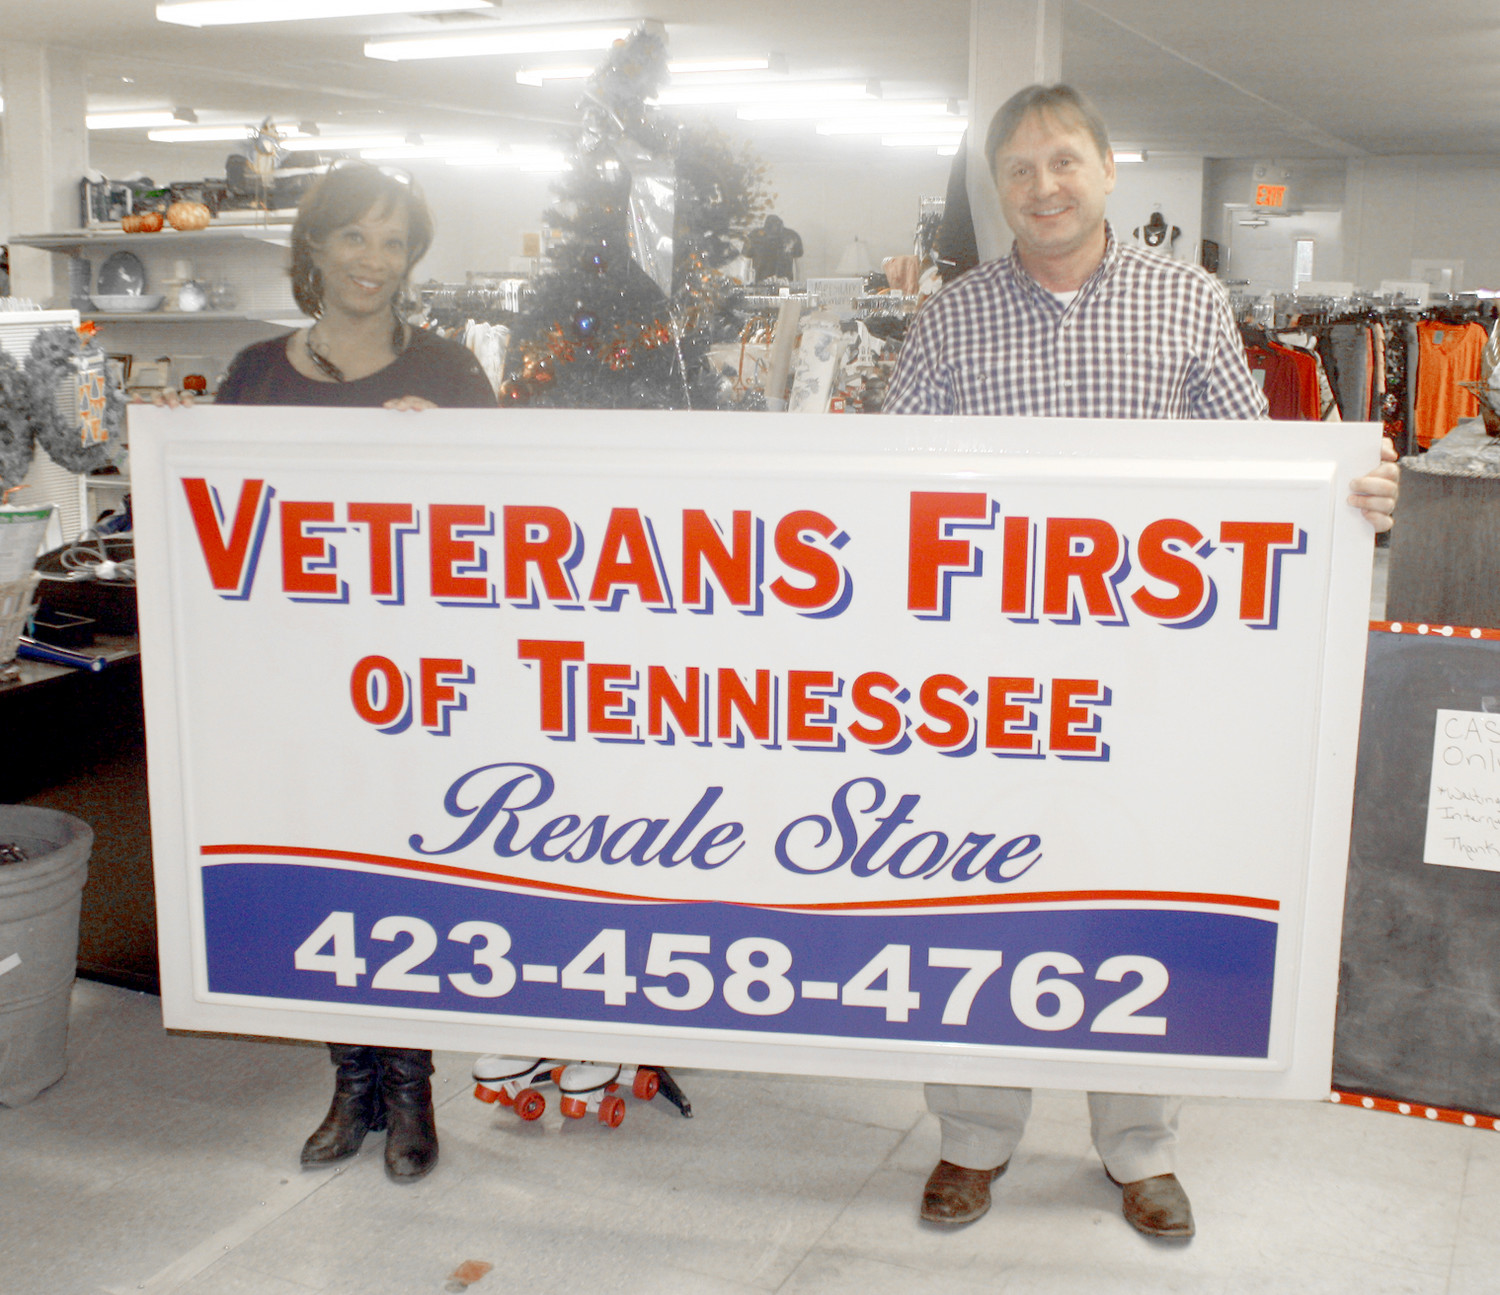 GRANT PIRKLE, right, president of Veterans First of Tennessee Resale Store, joins store manager Sonya Locklin in displaying a sign for the organization's new location on South Lee Highway.